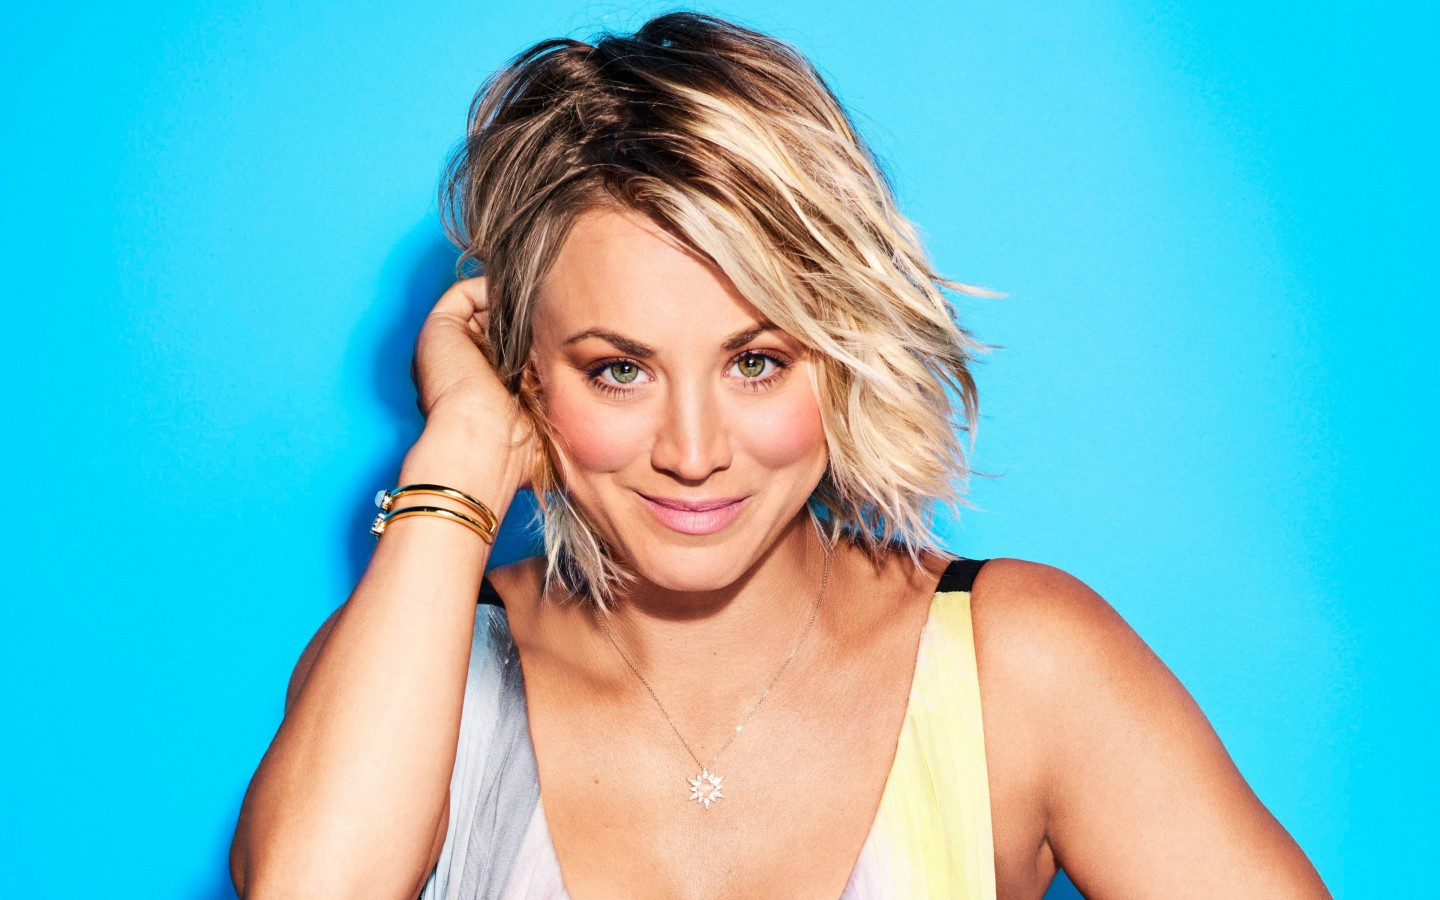 Kaley Cuoco 4K 2017 Wallpapers  HD Wallpapers  ID 21042